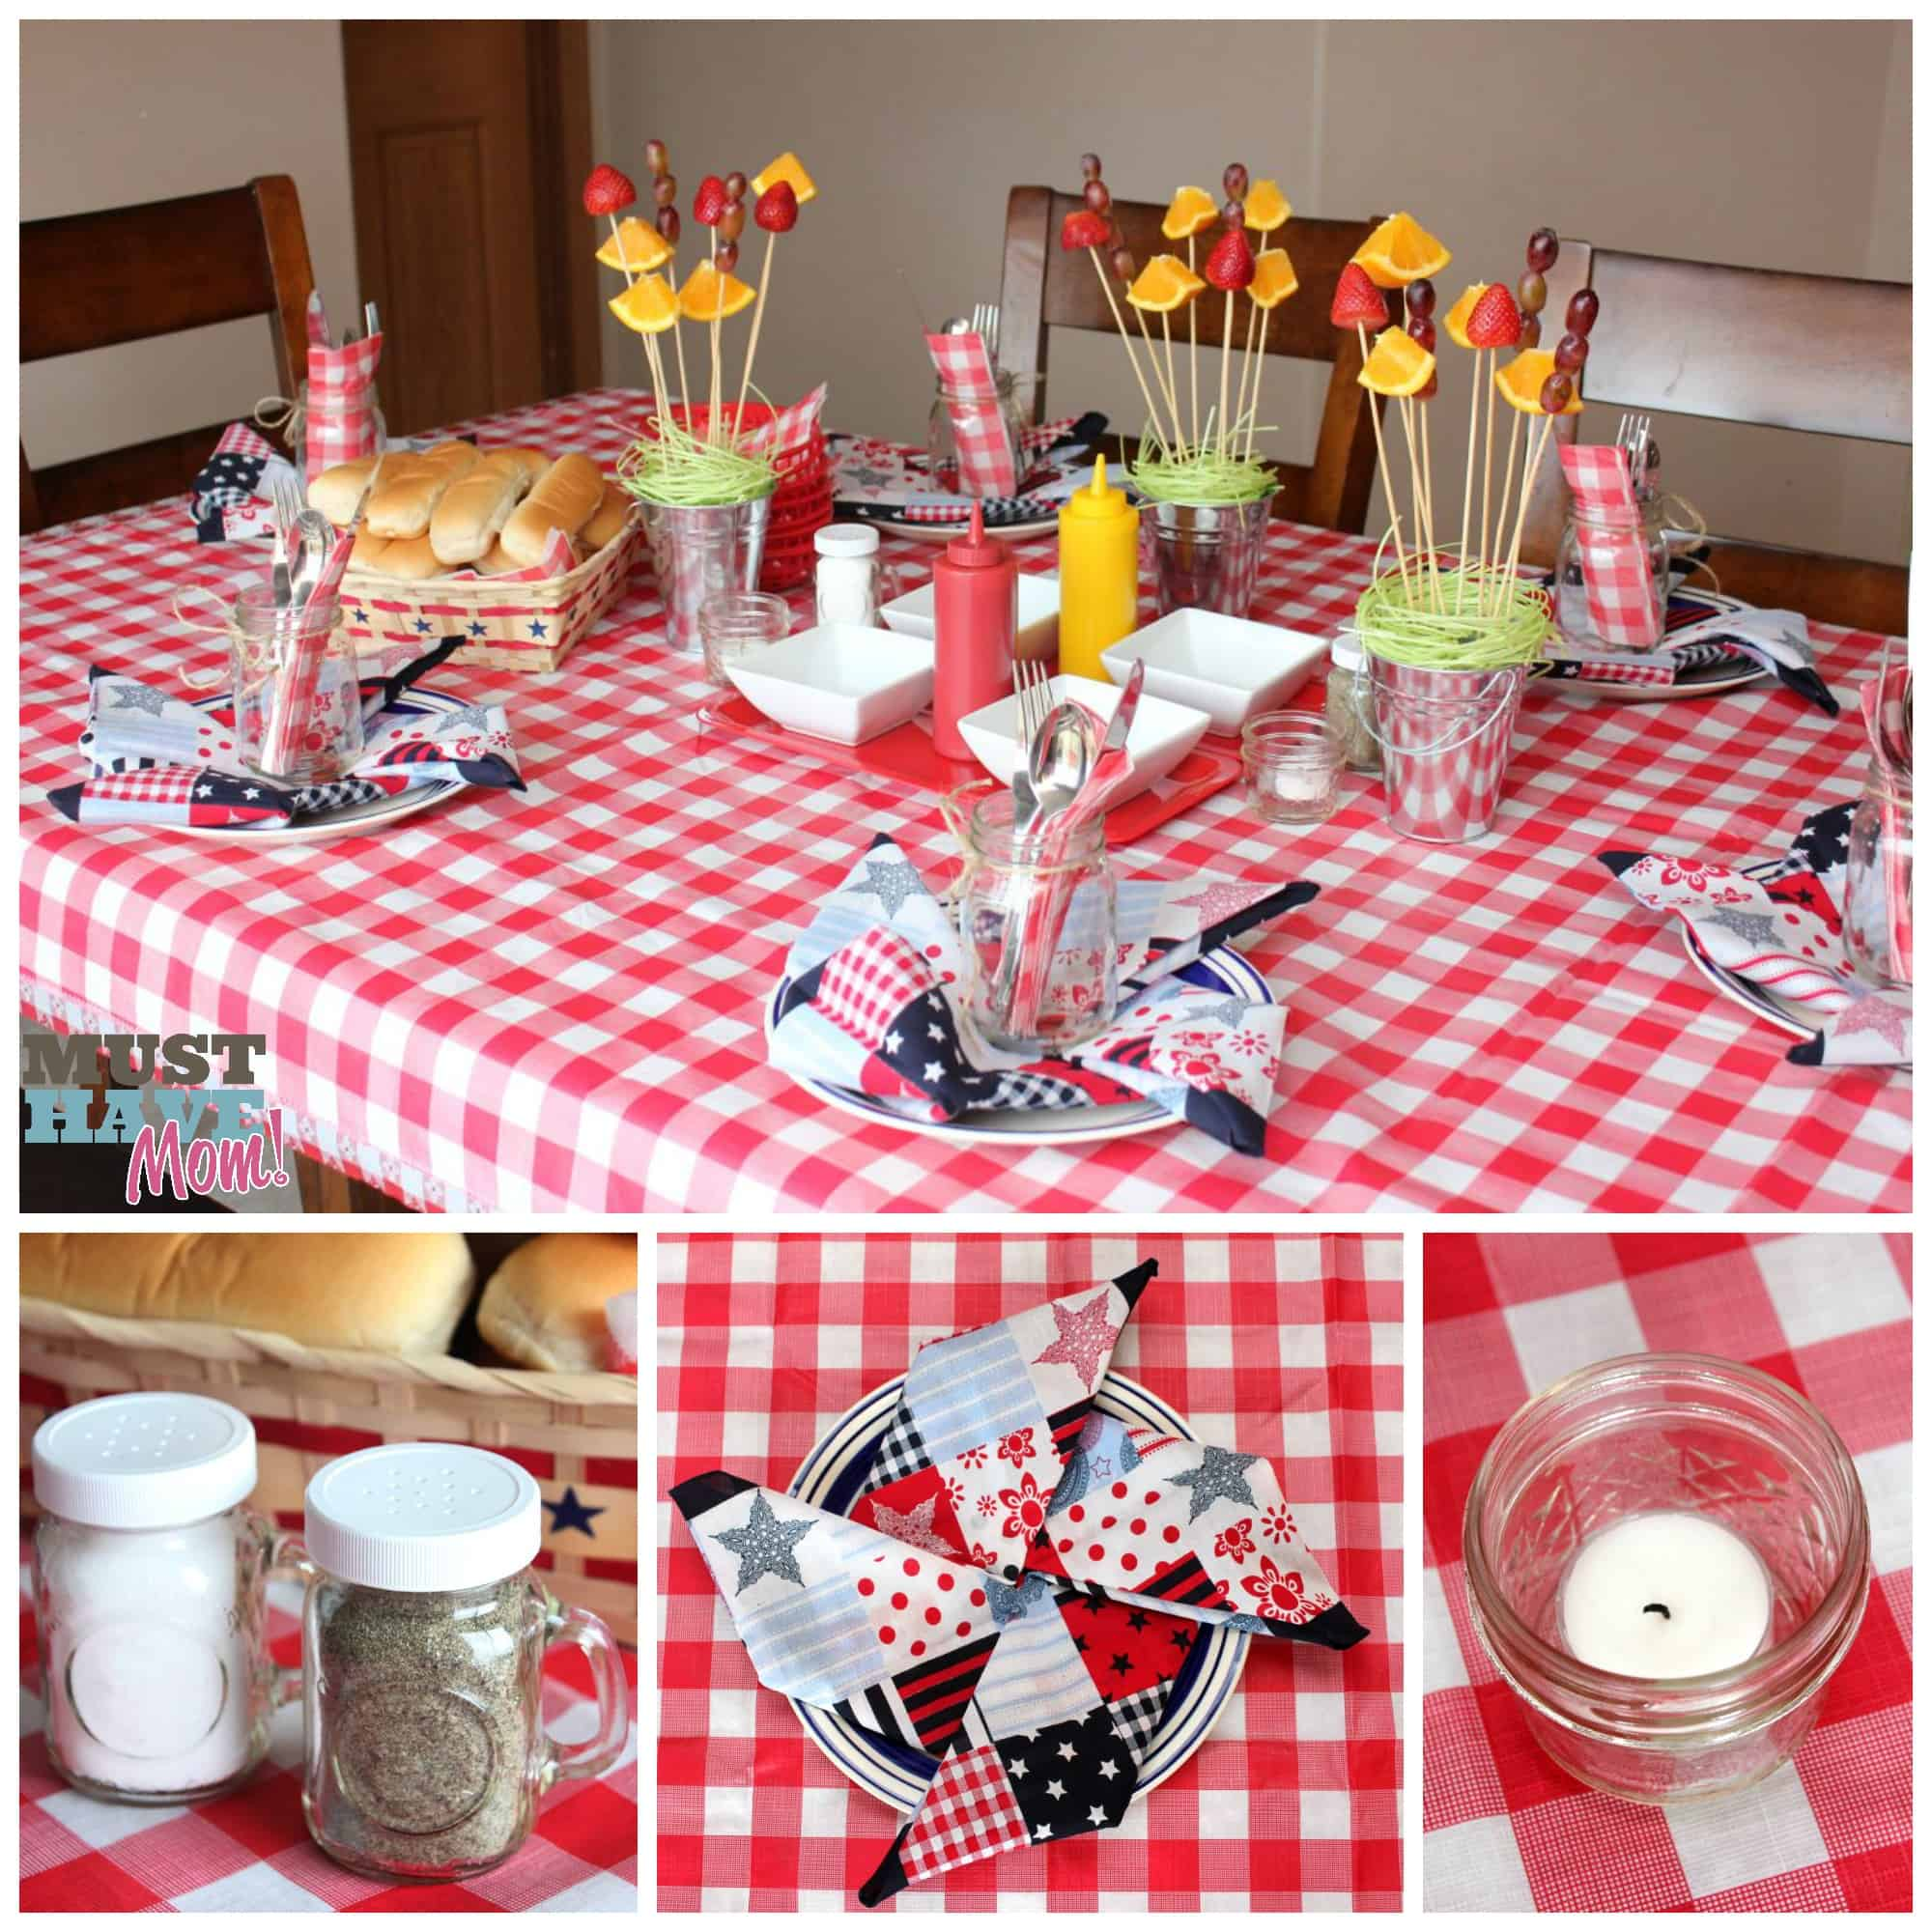 BBQ Tablescape Ideas - Must Have Mom